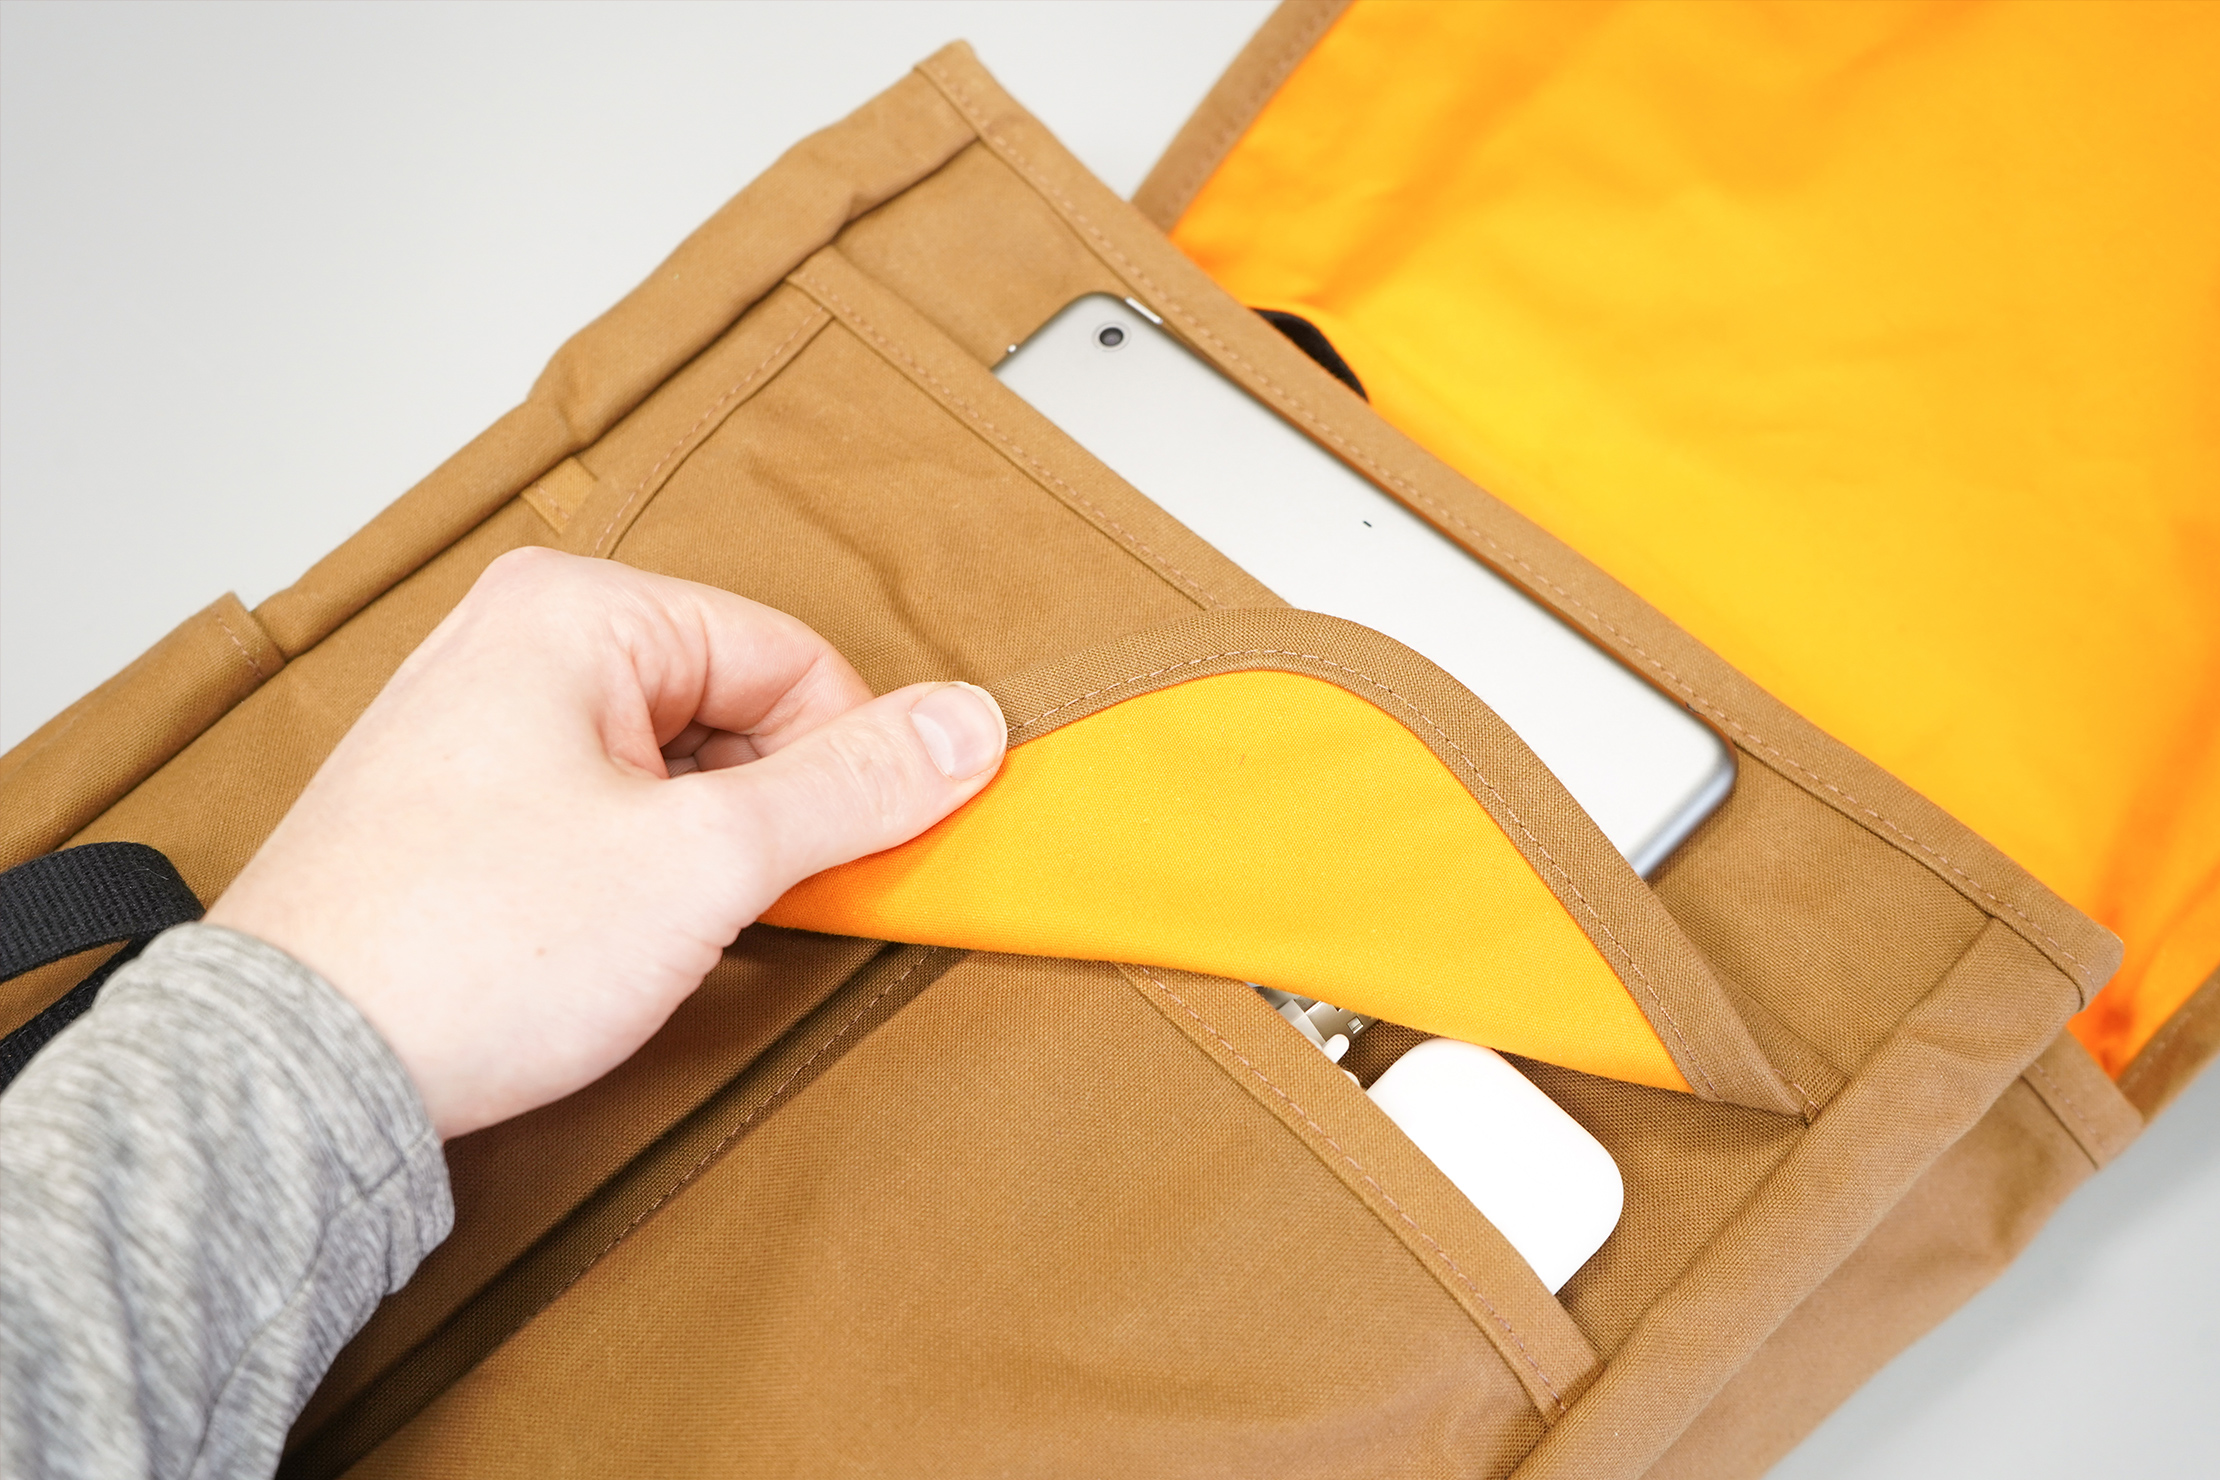 Trakke Bannoch | The front pockets offer good organization though they're underneath flaps